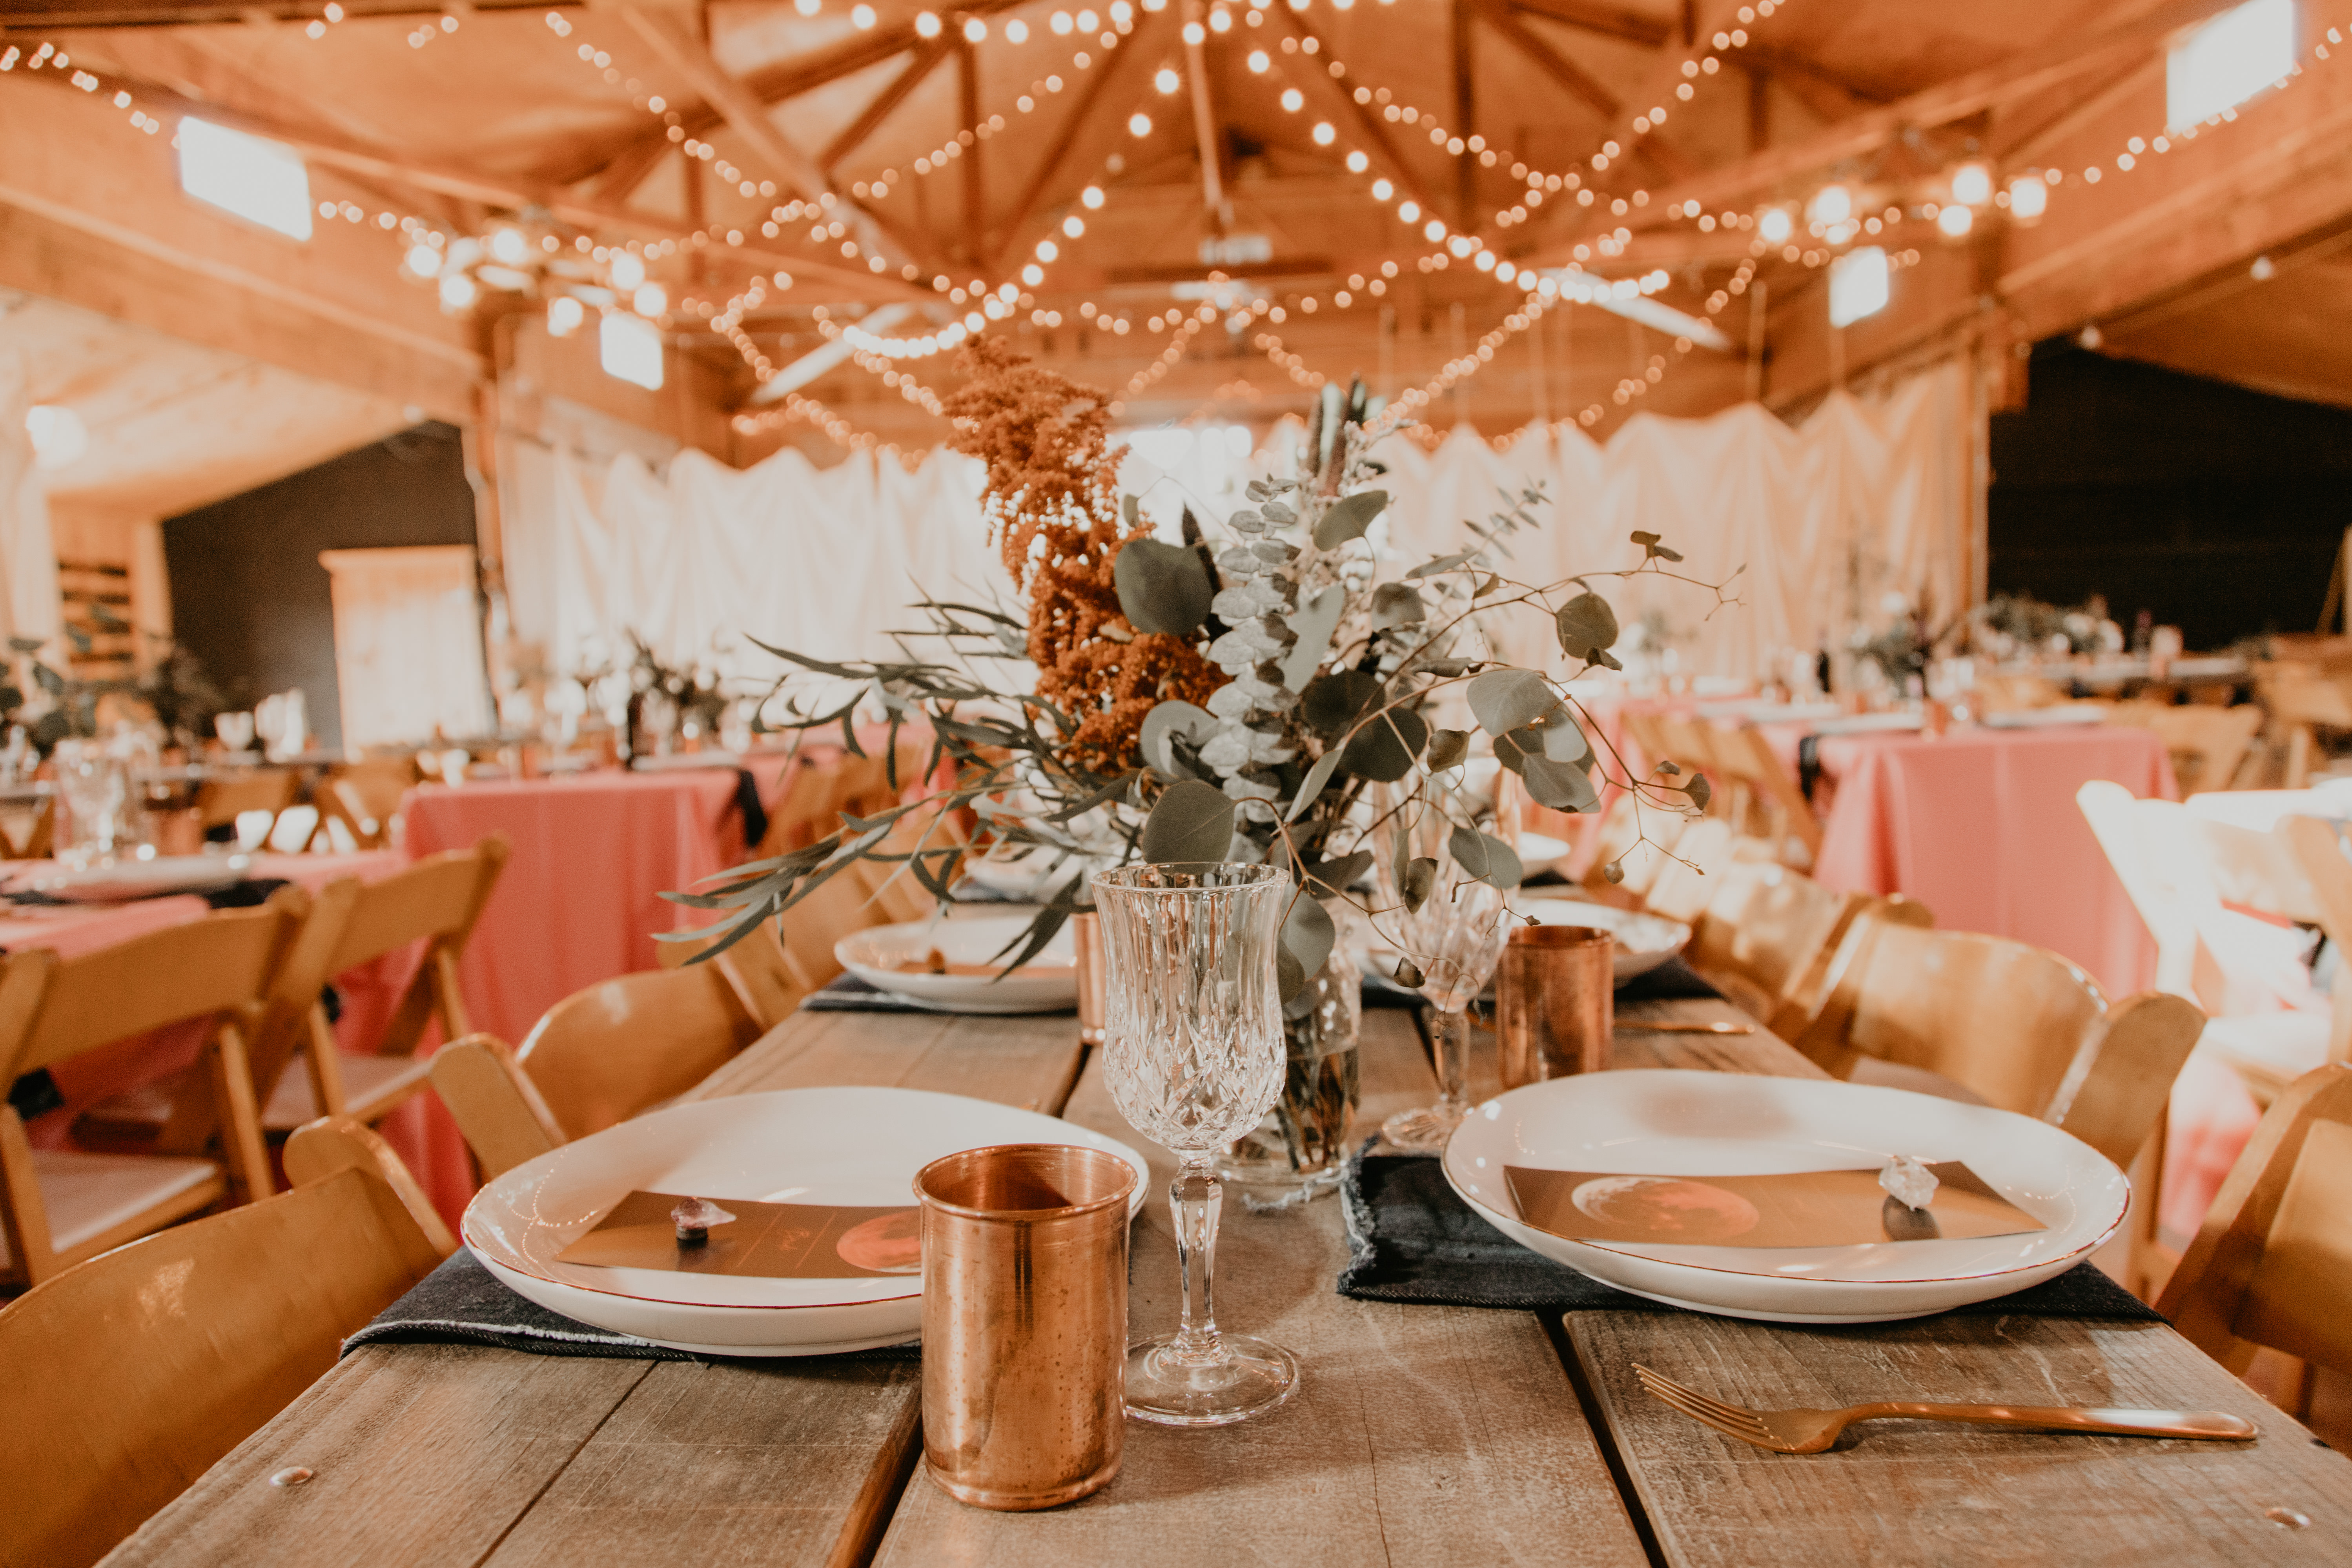 Reception table wedding setup at Pioneertown Soundstage, photo by Fatima Elreda Photo